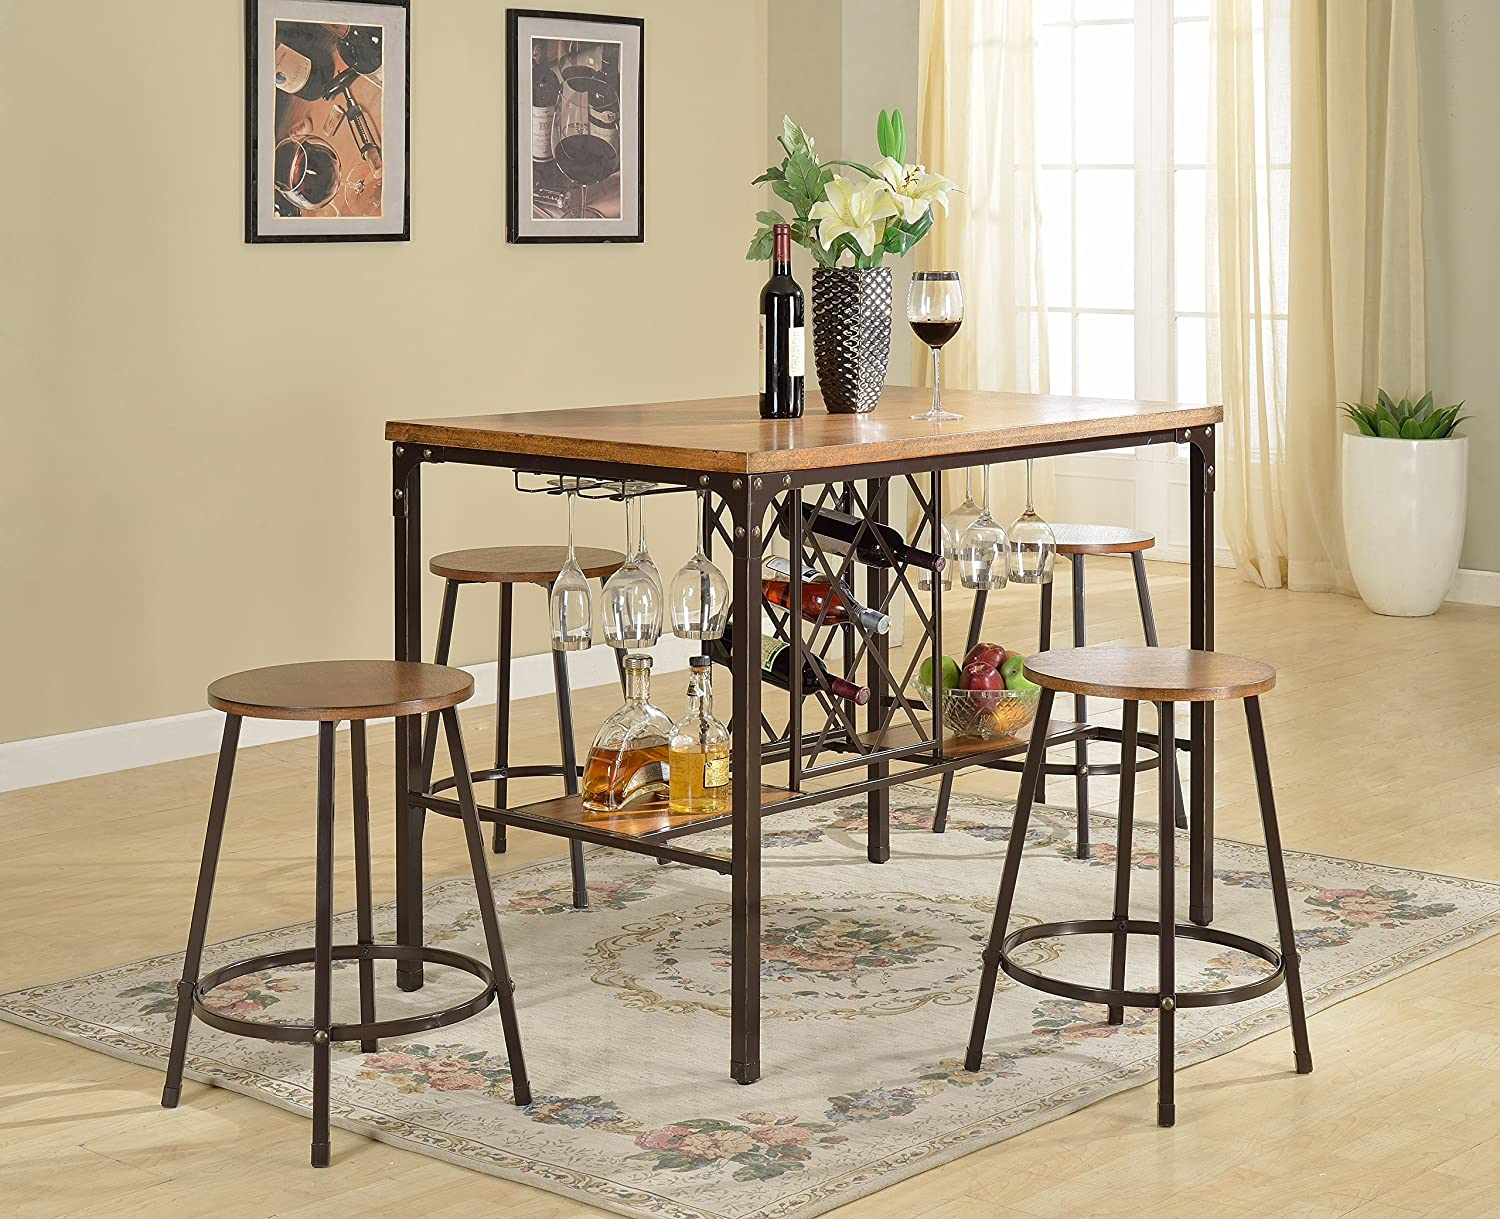 Amazon Com Baxton Studio Vintner Pub Set 30 1l X 48 1w X 36 5h Black Brown Furniture Decor